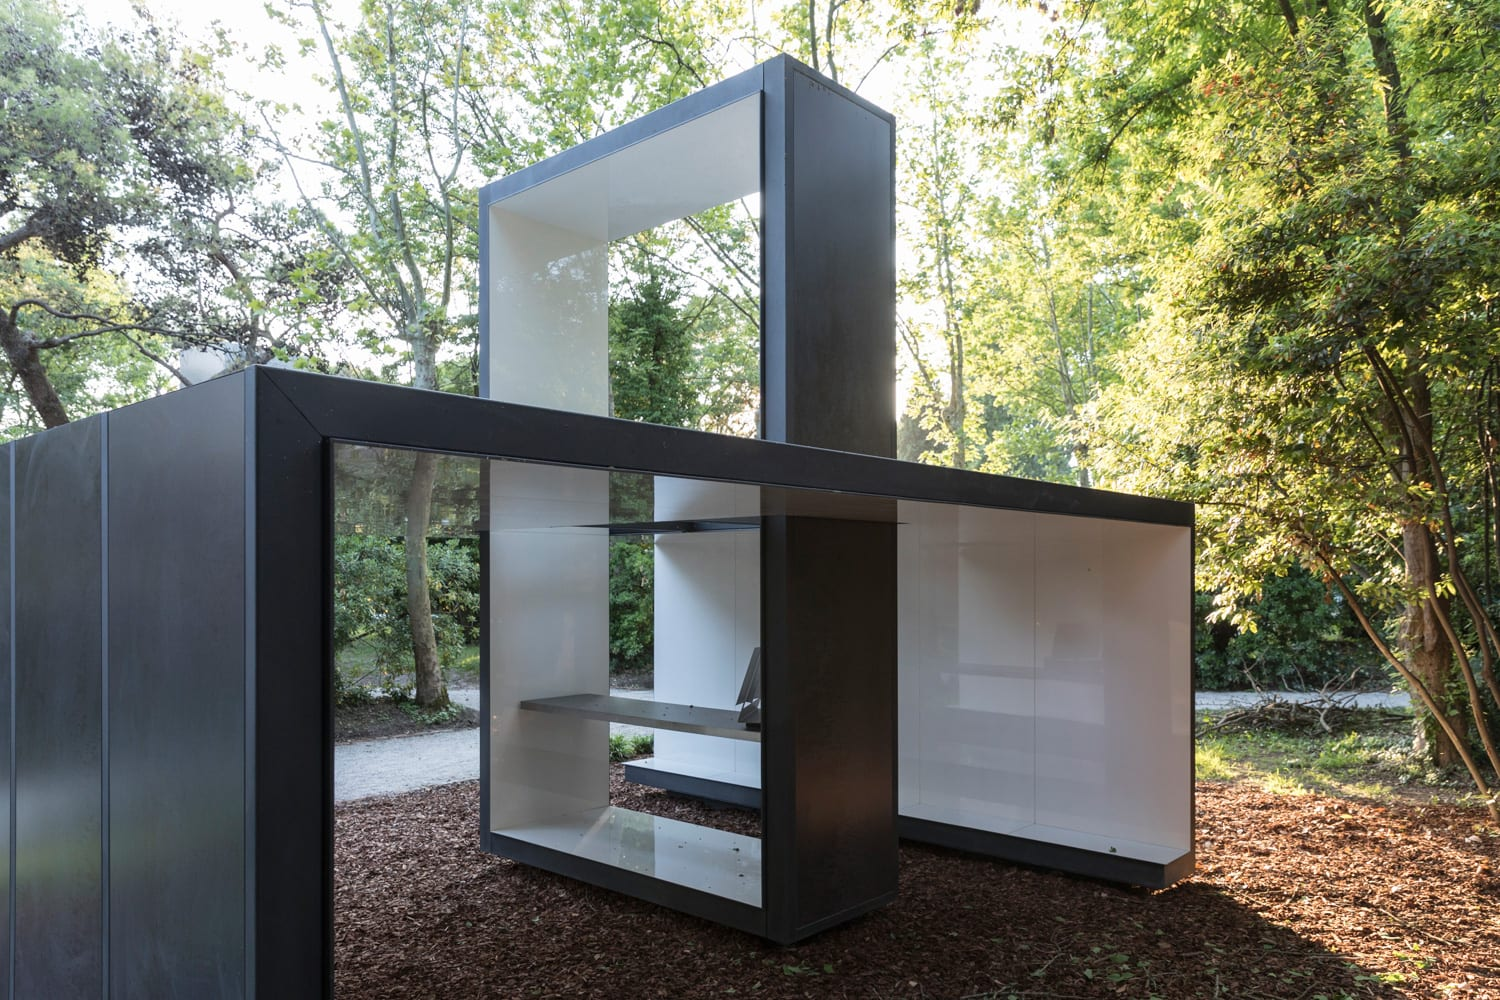 Francesco Cellini, Italy Chapel in a Venice Forest, Venice Architecture Biennale 2018 | Yellowtrace